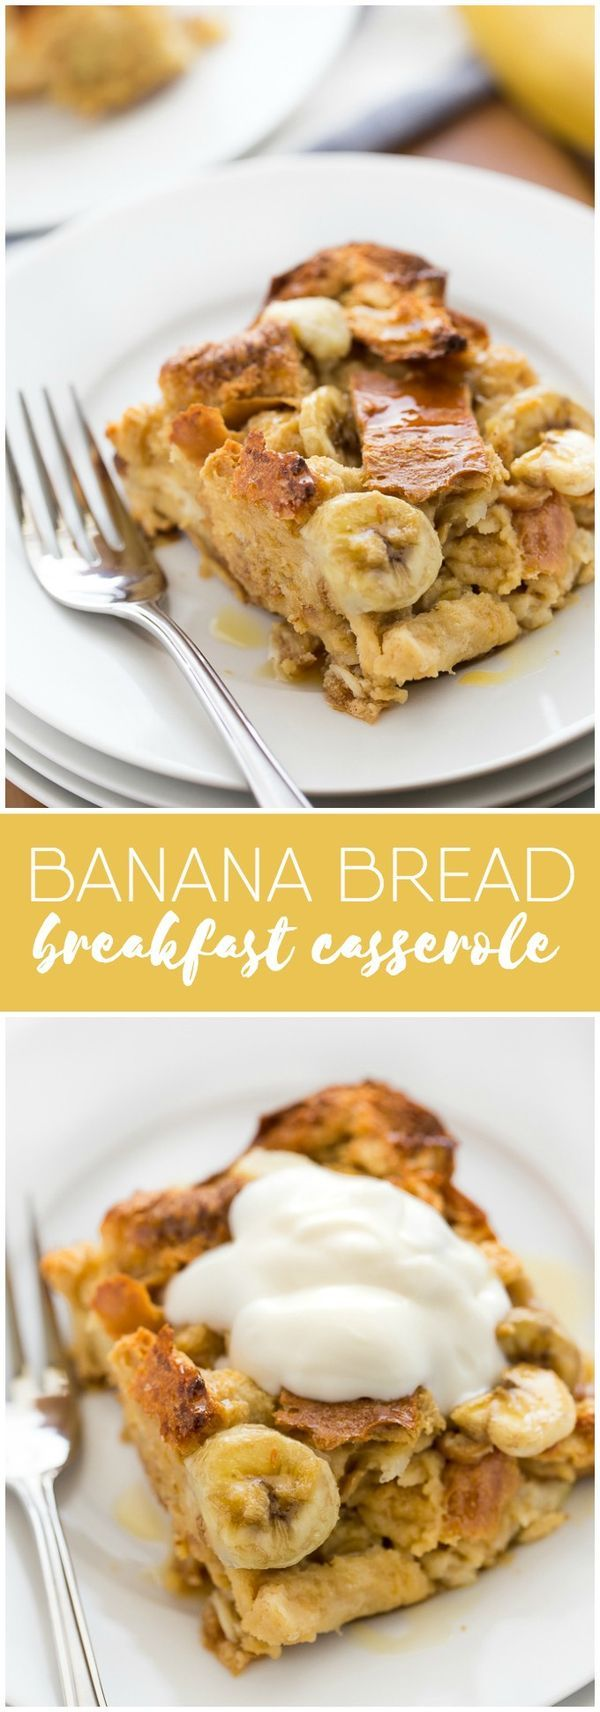 Banana Bread Breakfast Casserole - Use up your brown bananas and leftover bread in this crowd-pleasing breakfast recipe! It comes together in 10 minutes, bakes for 1 hour and is a meal you'll find yourself making again and again.